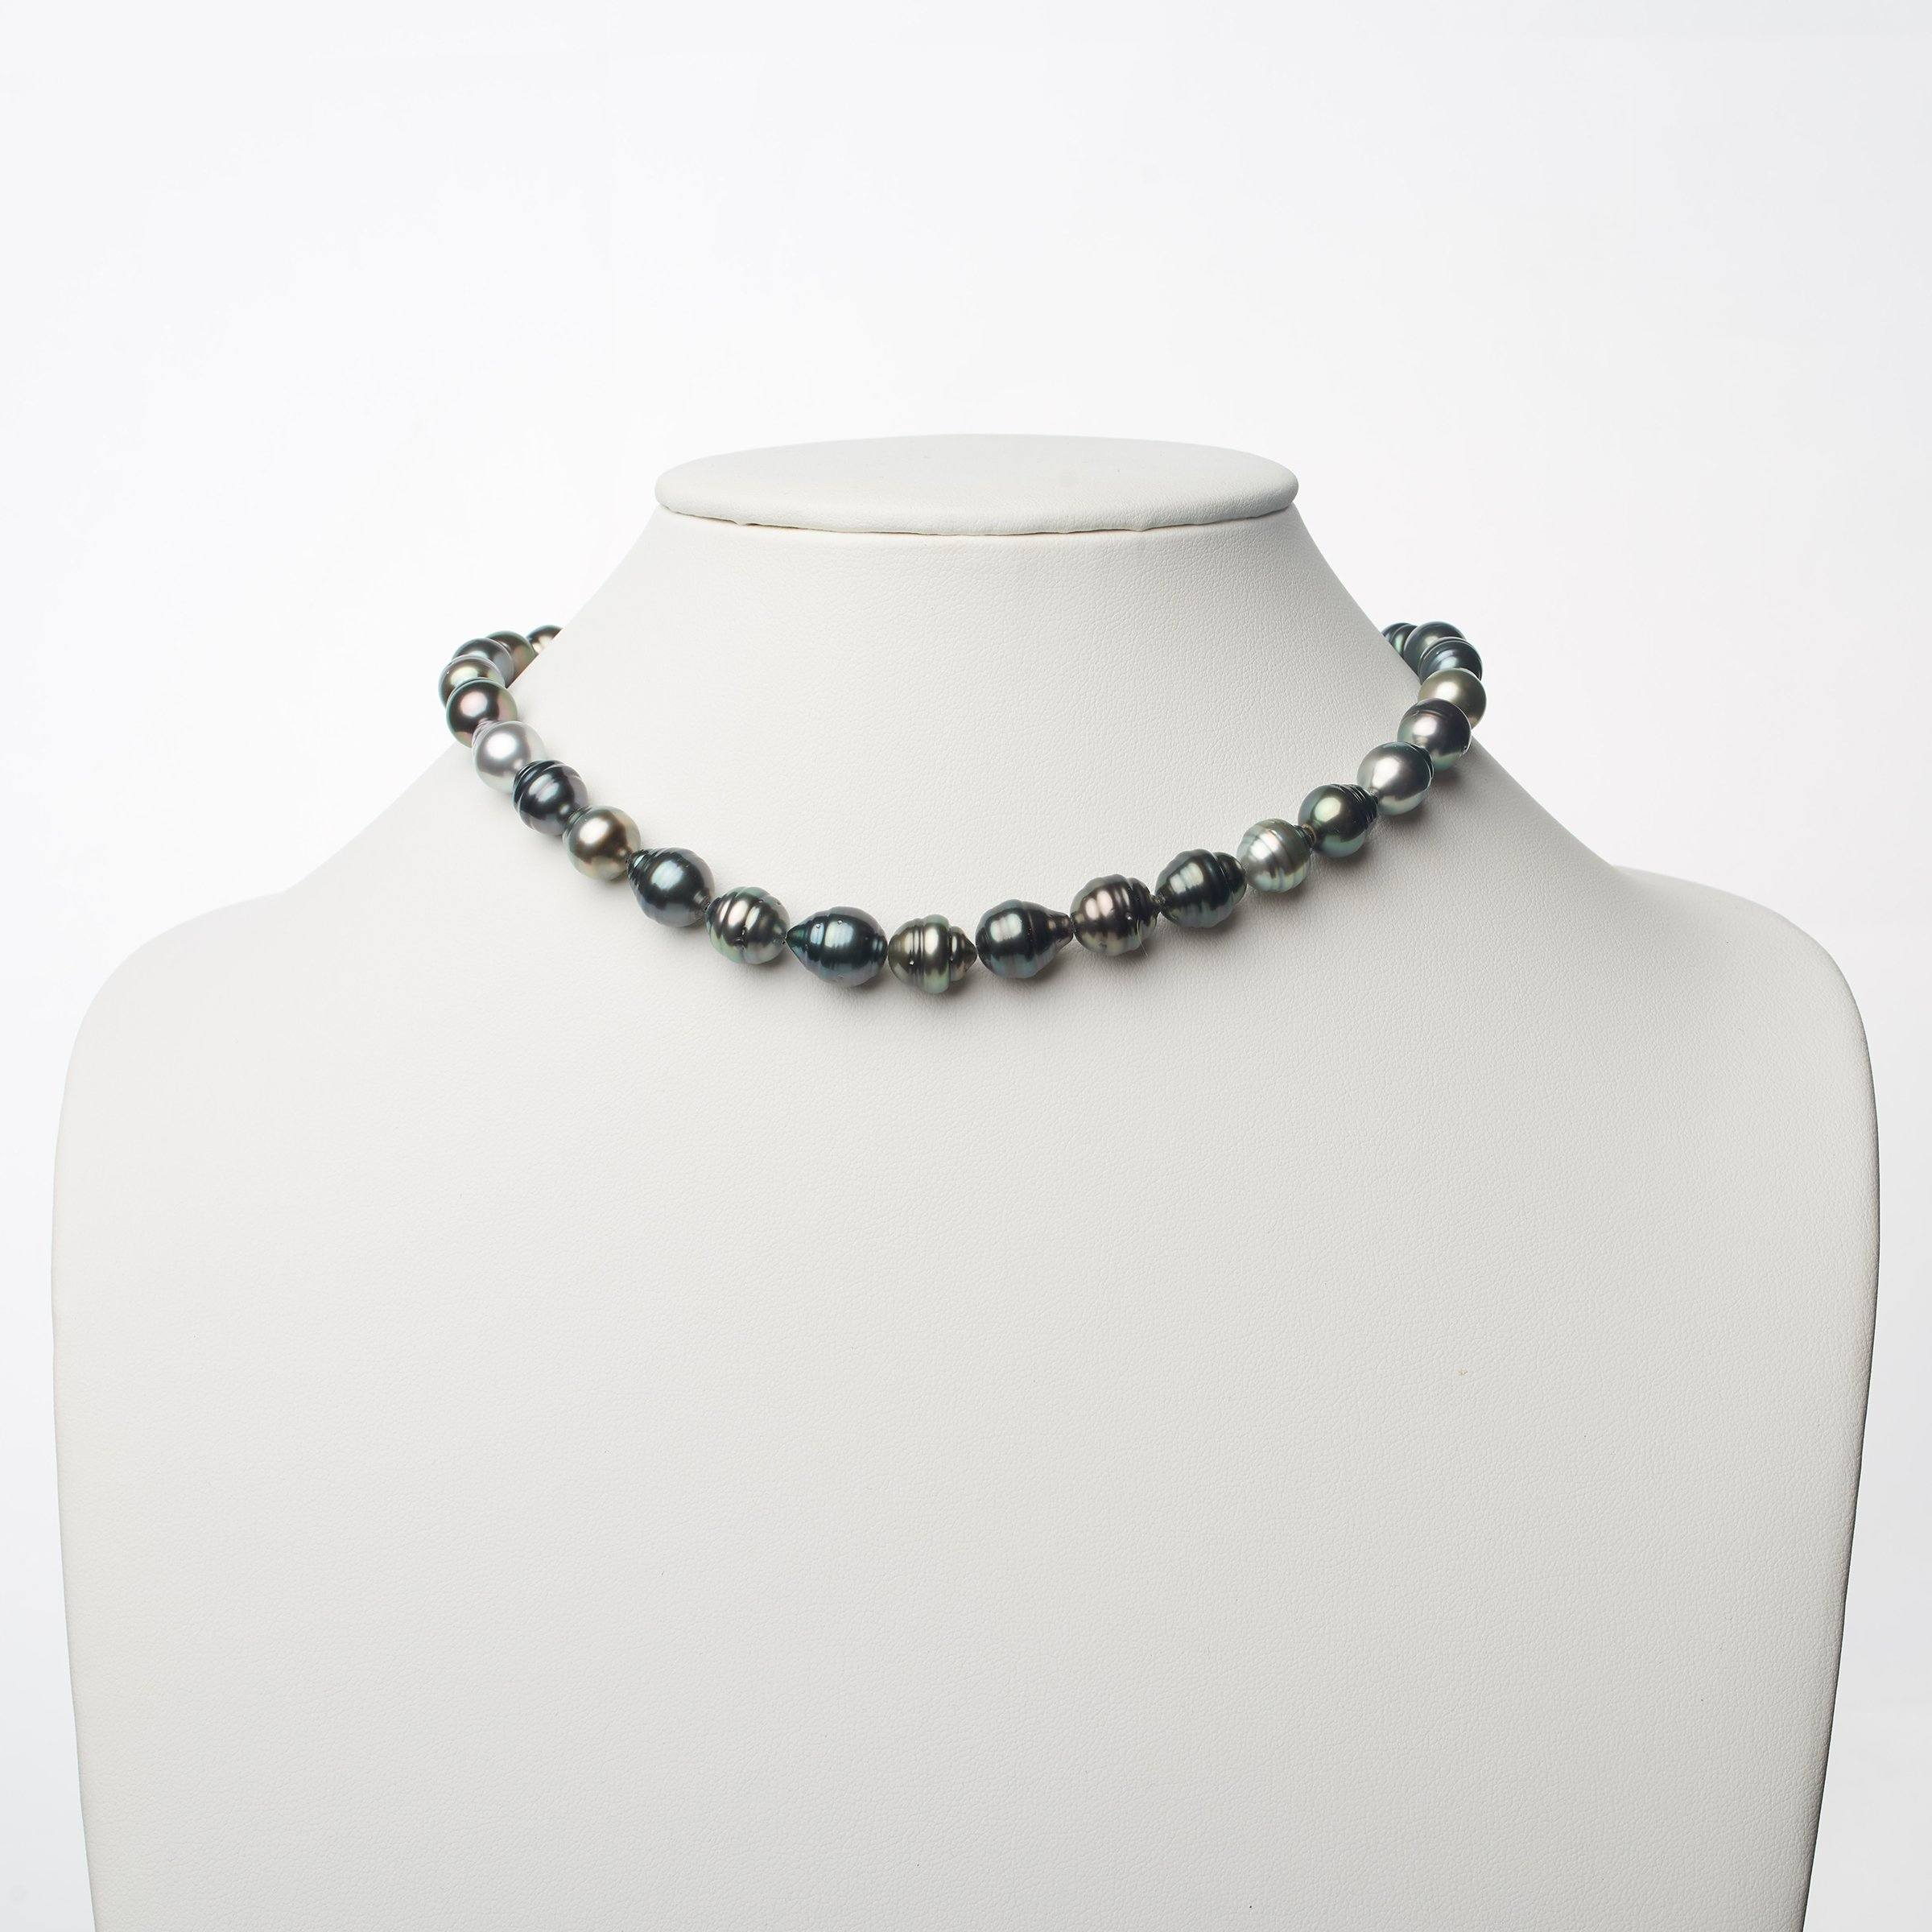 8.3-10.3 mm AA+ Tahitian Baroque Pearl Necklace